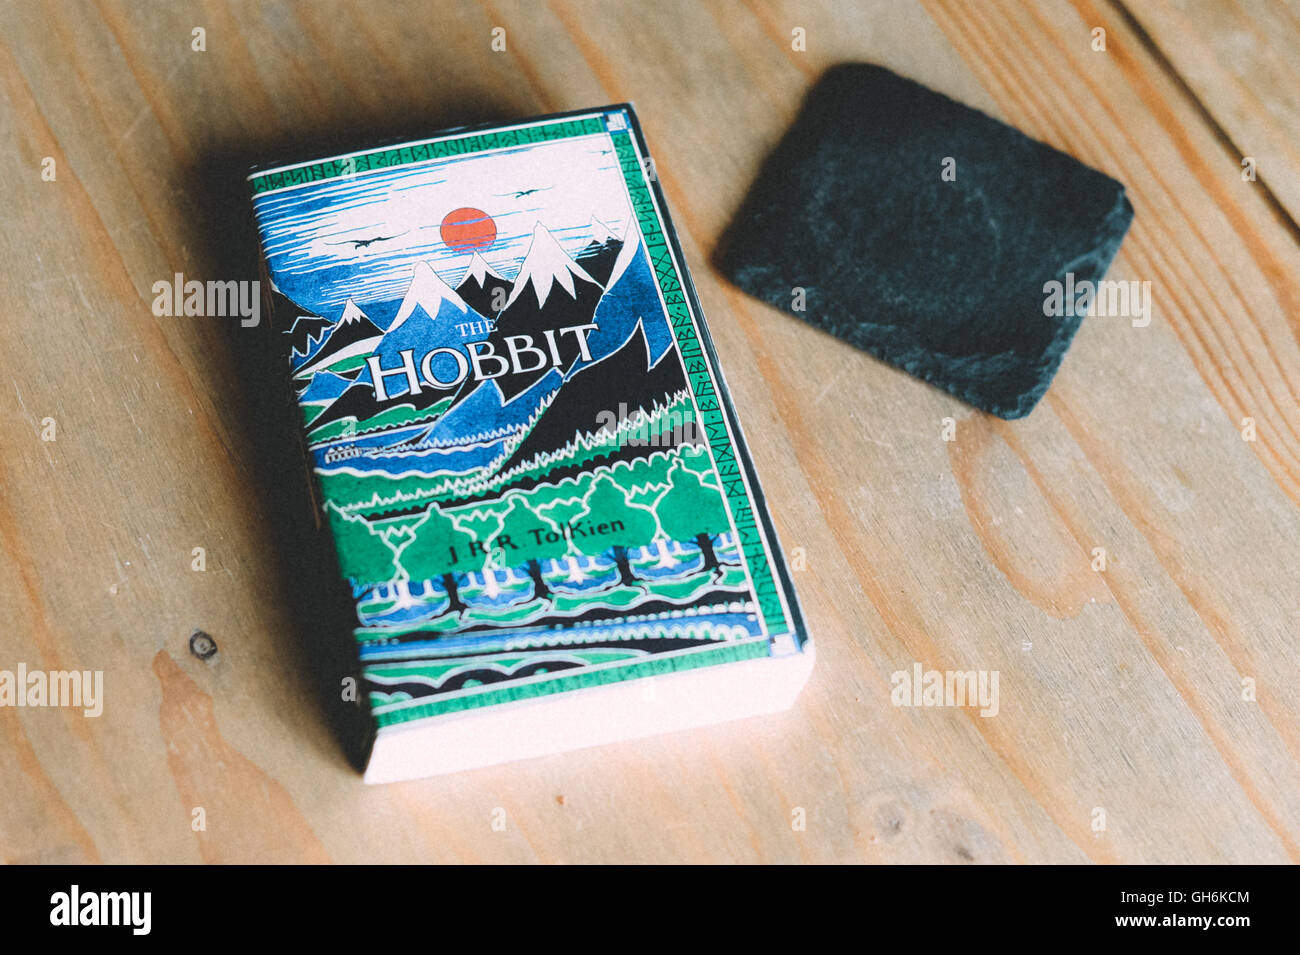 The Hobbit by JRR Tolkien book cover on a coffee table. - Stock Image